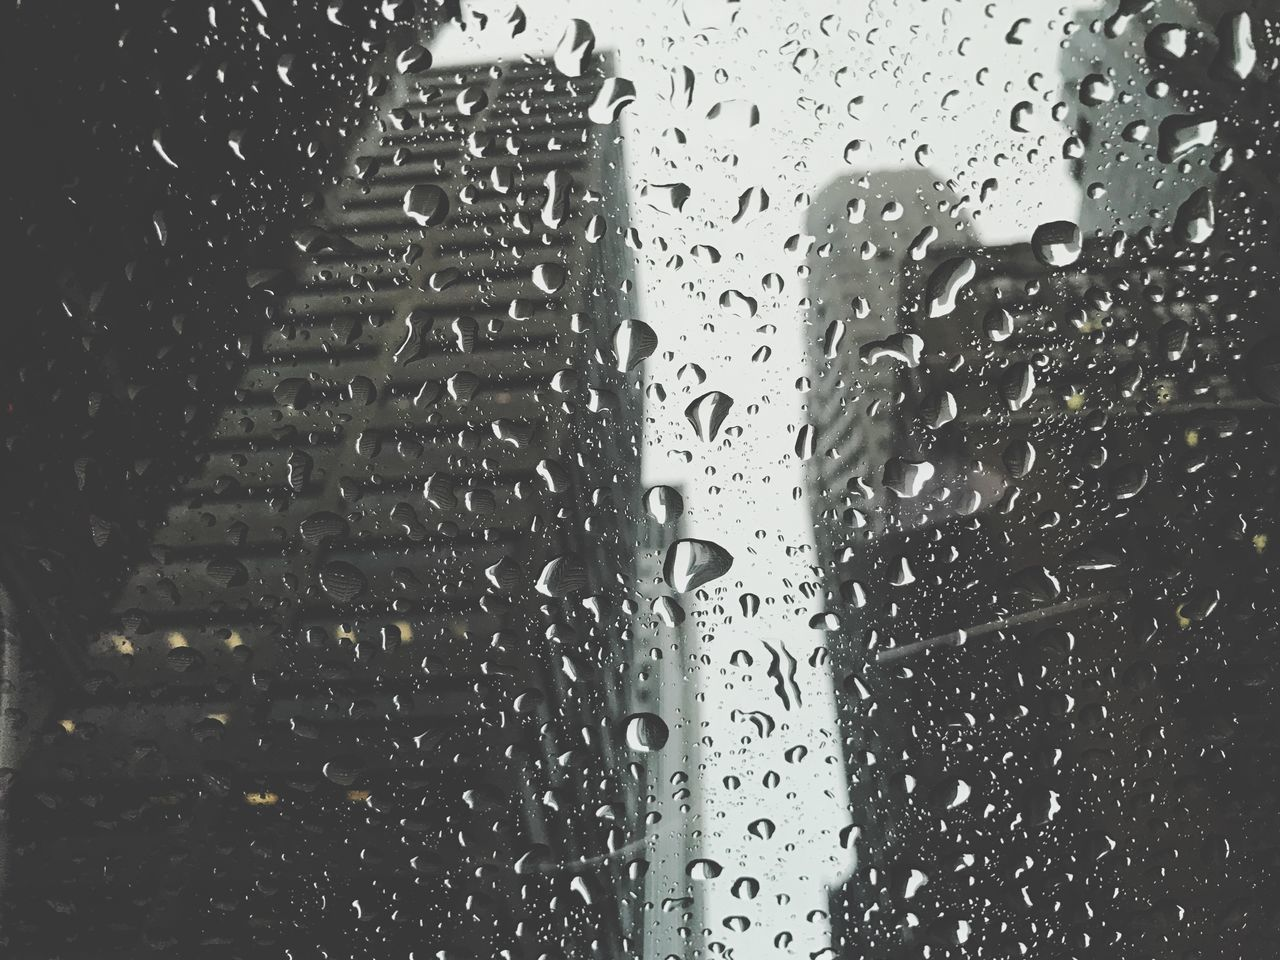 Rainy Days // Wet Glass - Material Drop Window Rain Car Water Vehicle Interior Transportation Car Wash Cleaning Mode Of Transport No People Land Vehicle Day Rainy Season Close-up RainDrop Indoors  Sky